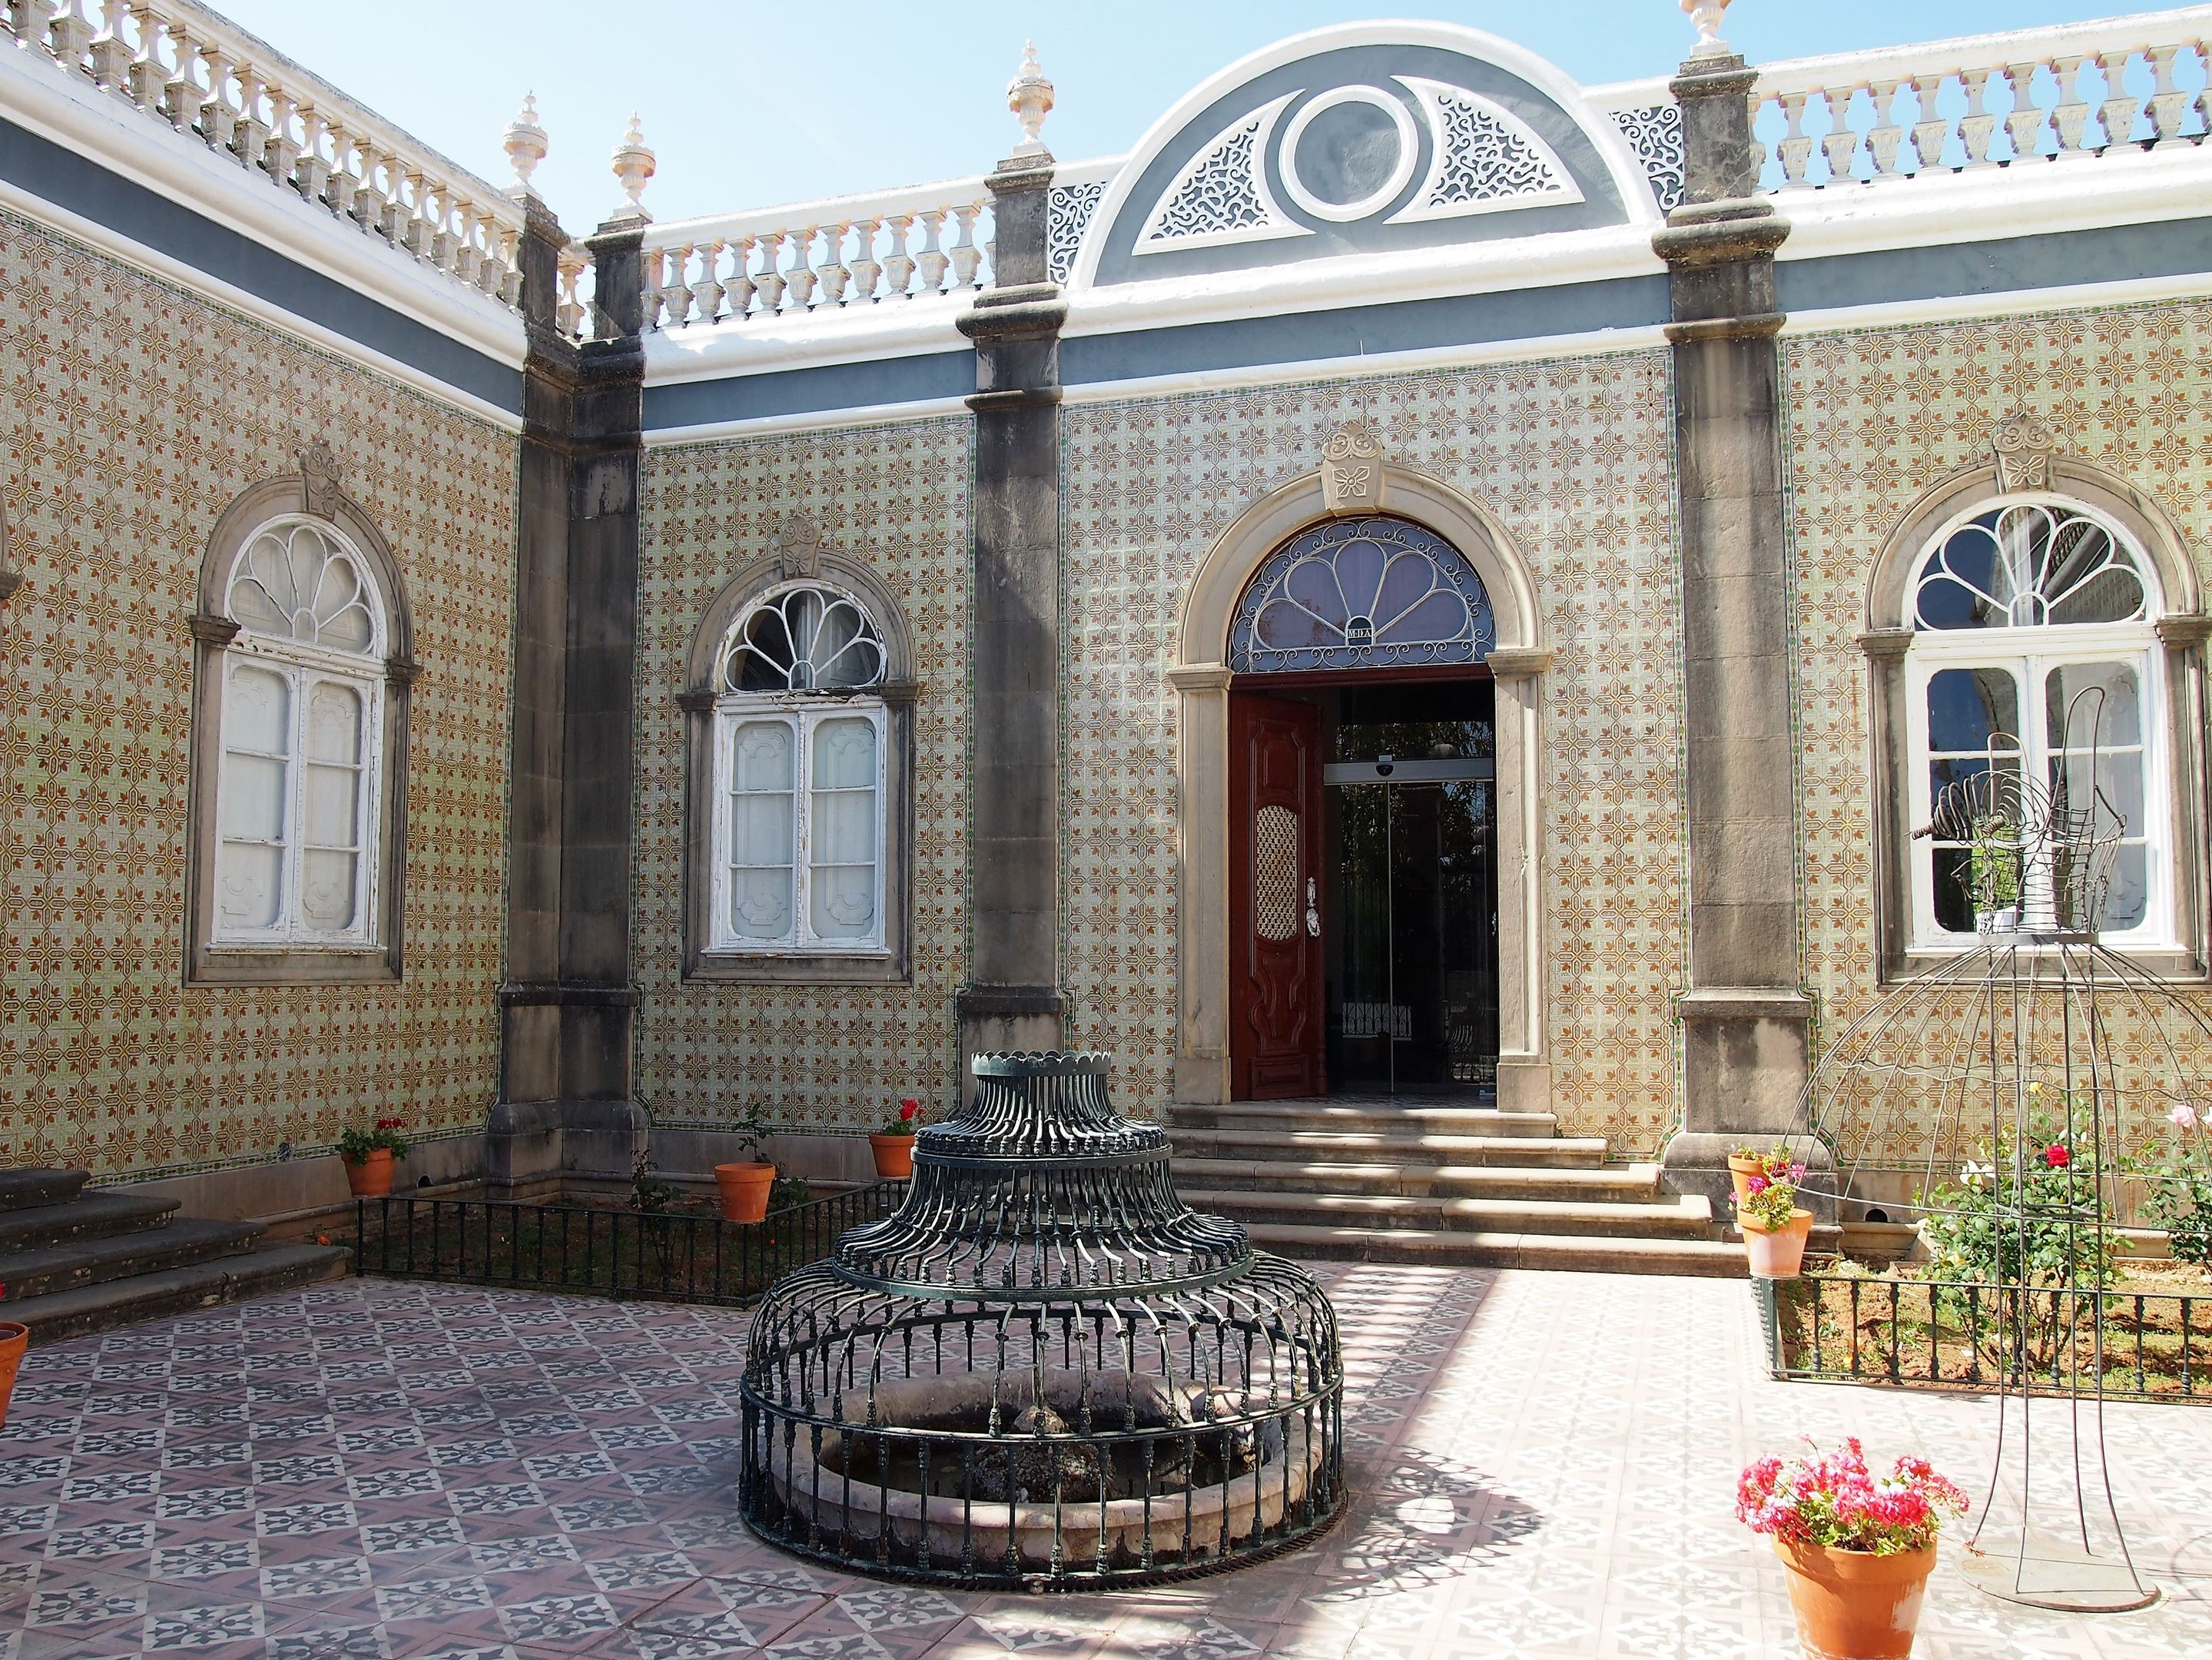 The courtyard entrance to the Algarve Costume Museum in São Brás de Alportel